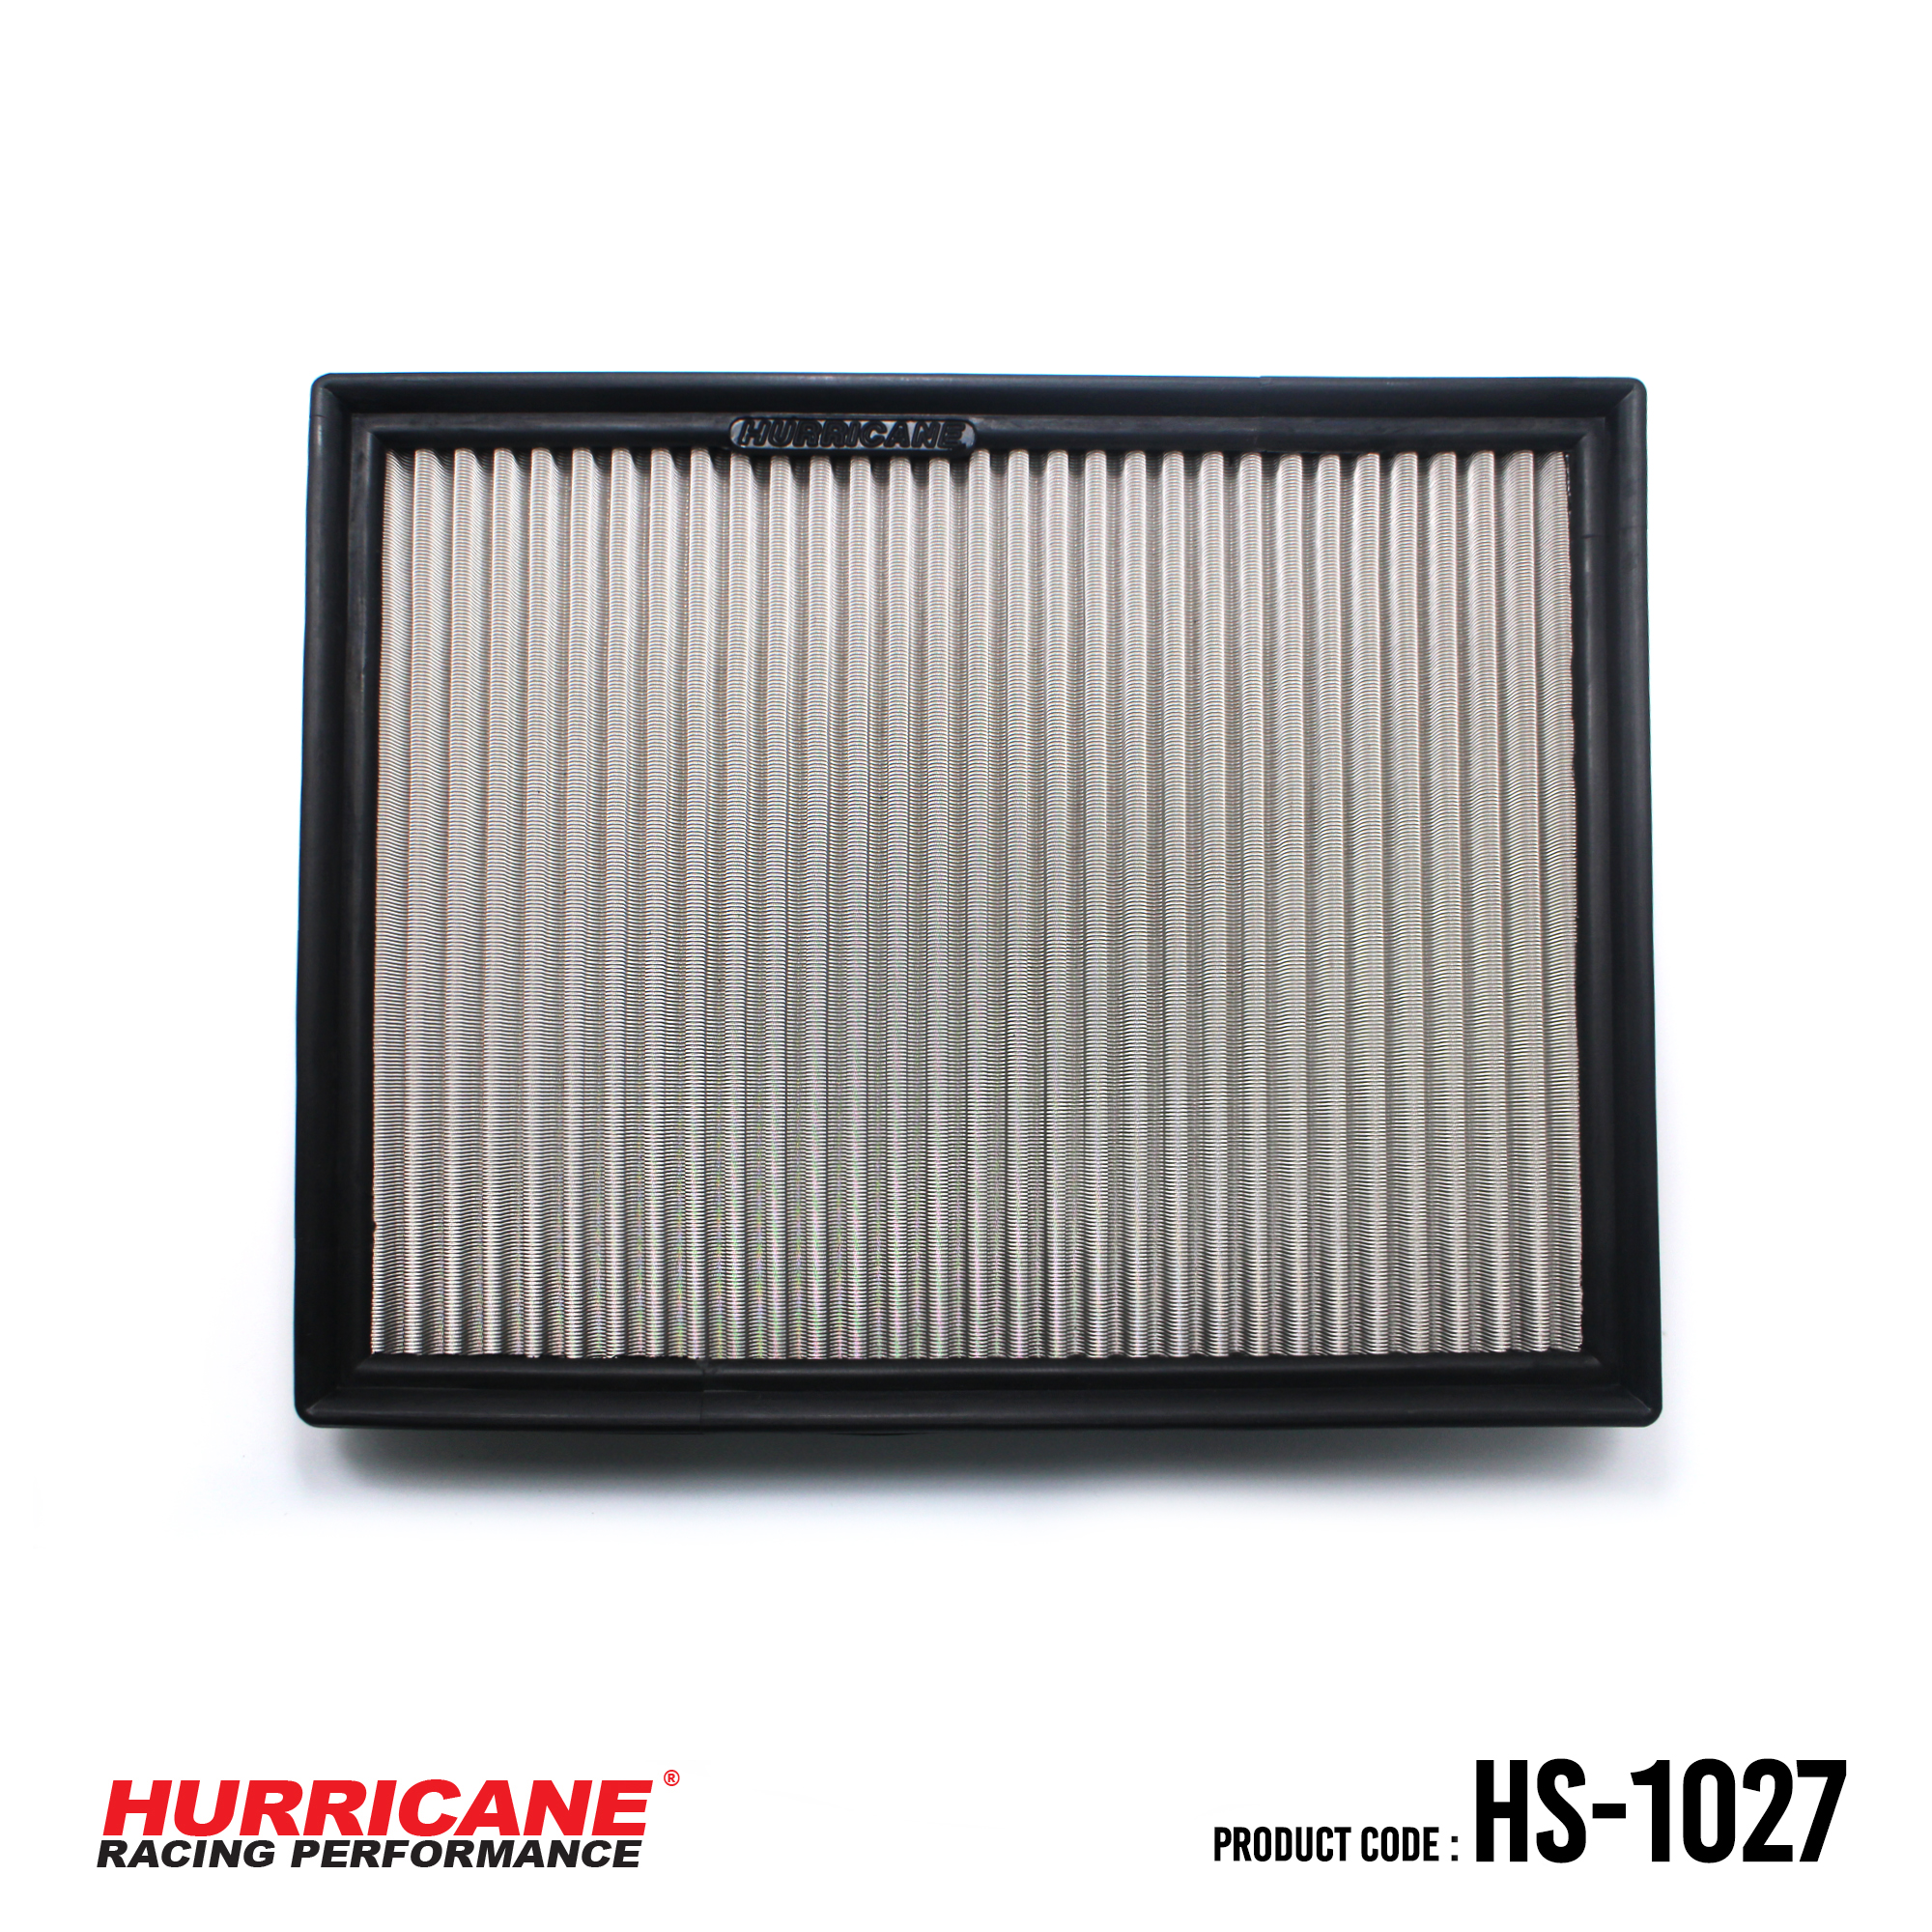 HURRICANE STAINLESS STEEL AIR FILTER FOR HS-1027 Ford